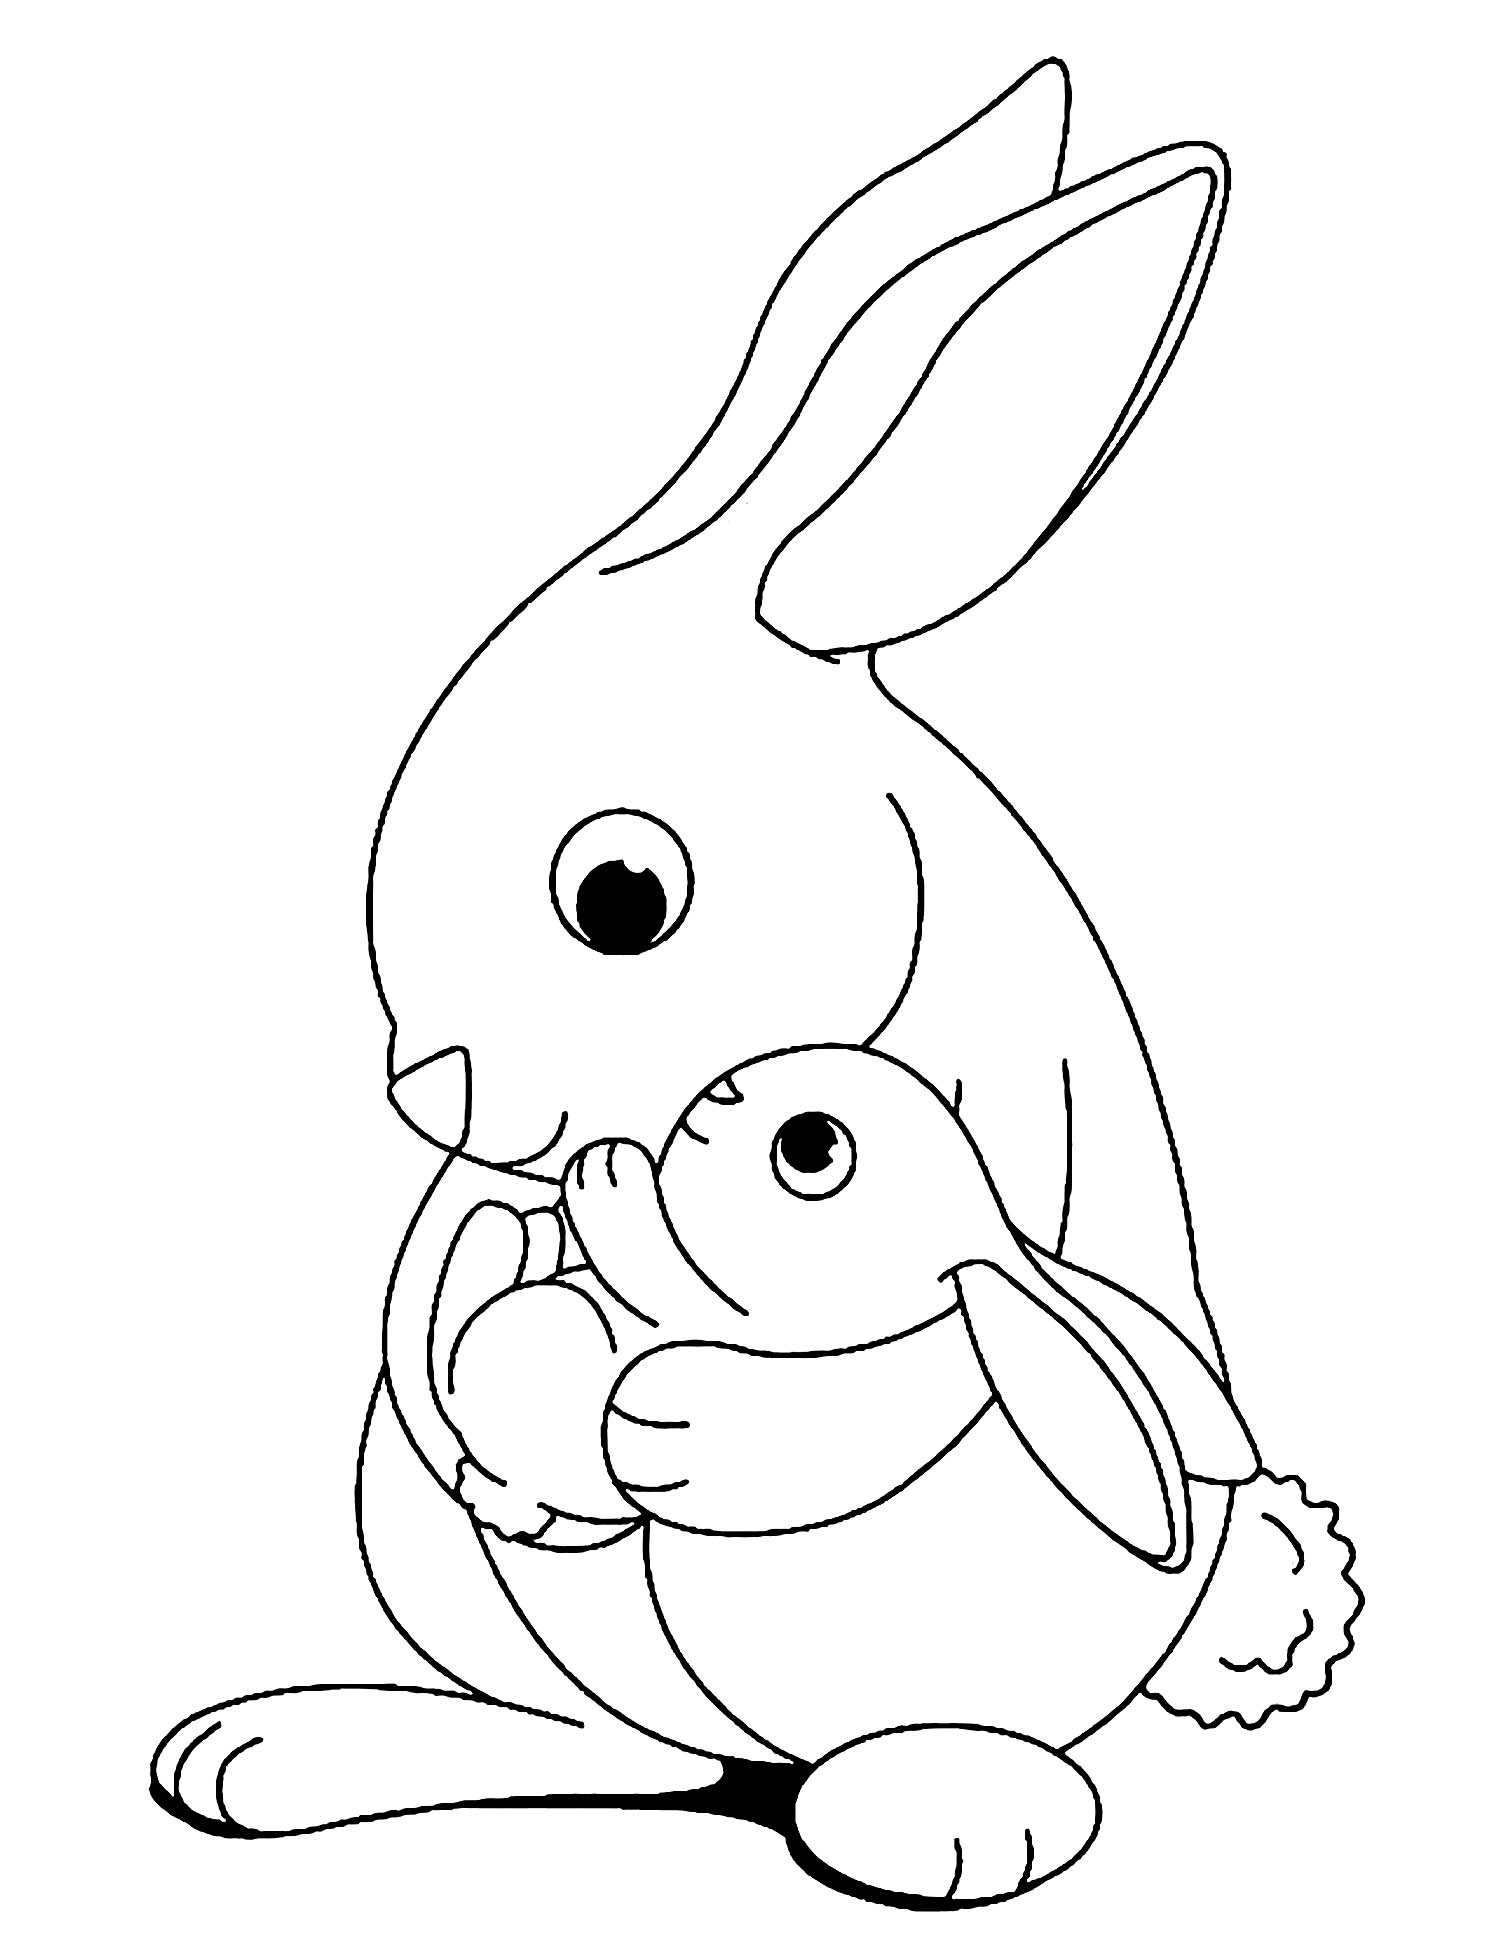 rabbit to print for free kids coloring bunny children discover fun crafts water art coloring pages Bunny Coloring Page